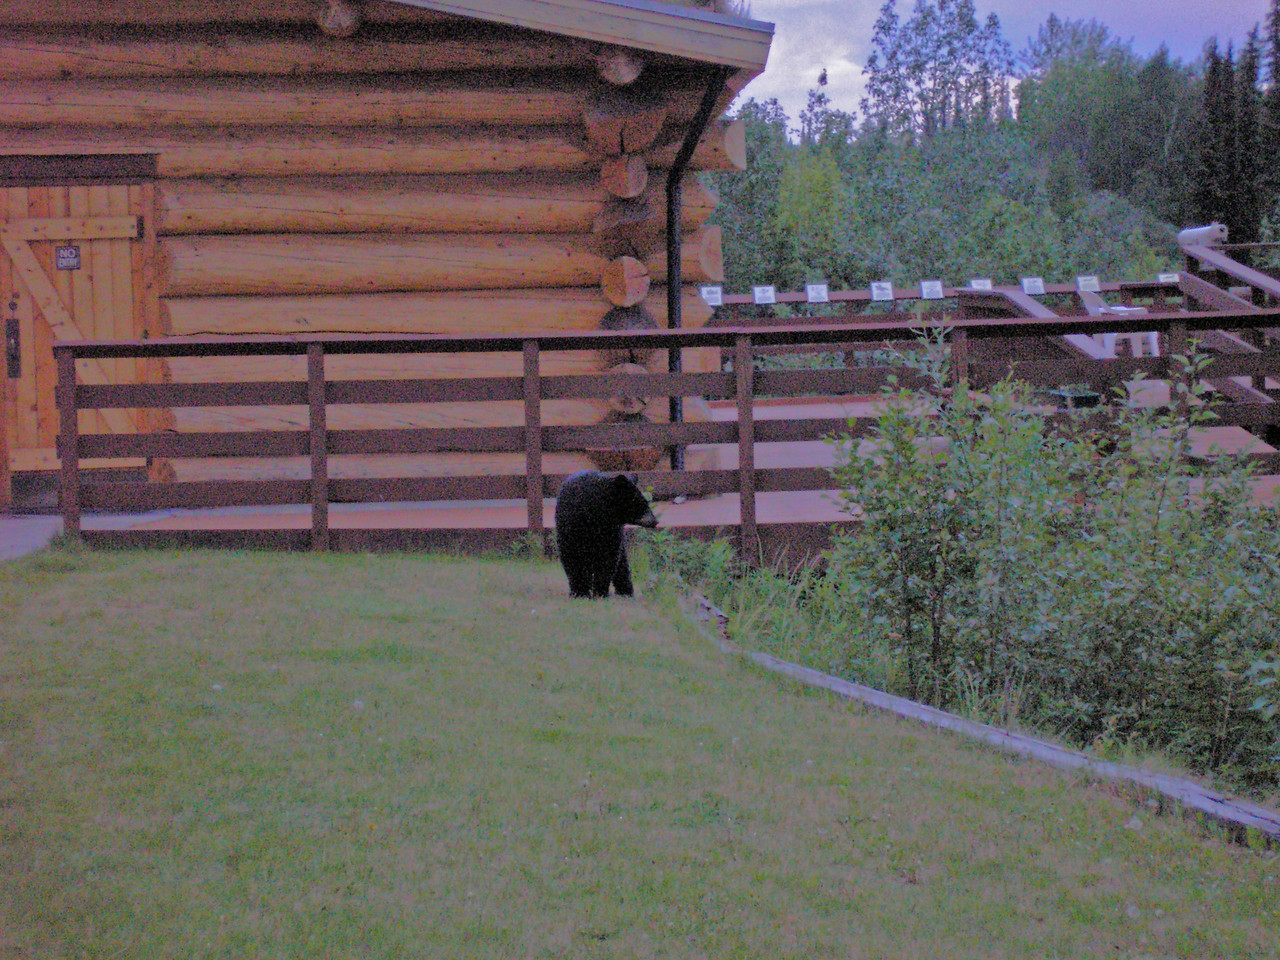 This view is of a Black Bear at Tetlin Visitor Center, right behind where we parked the rig.